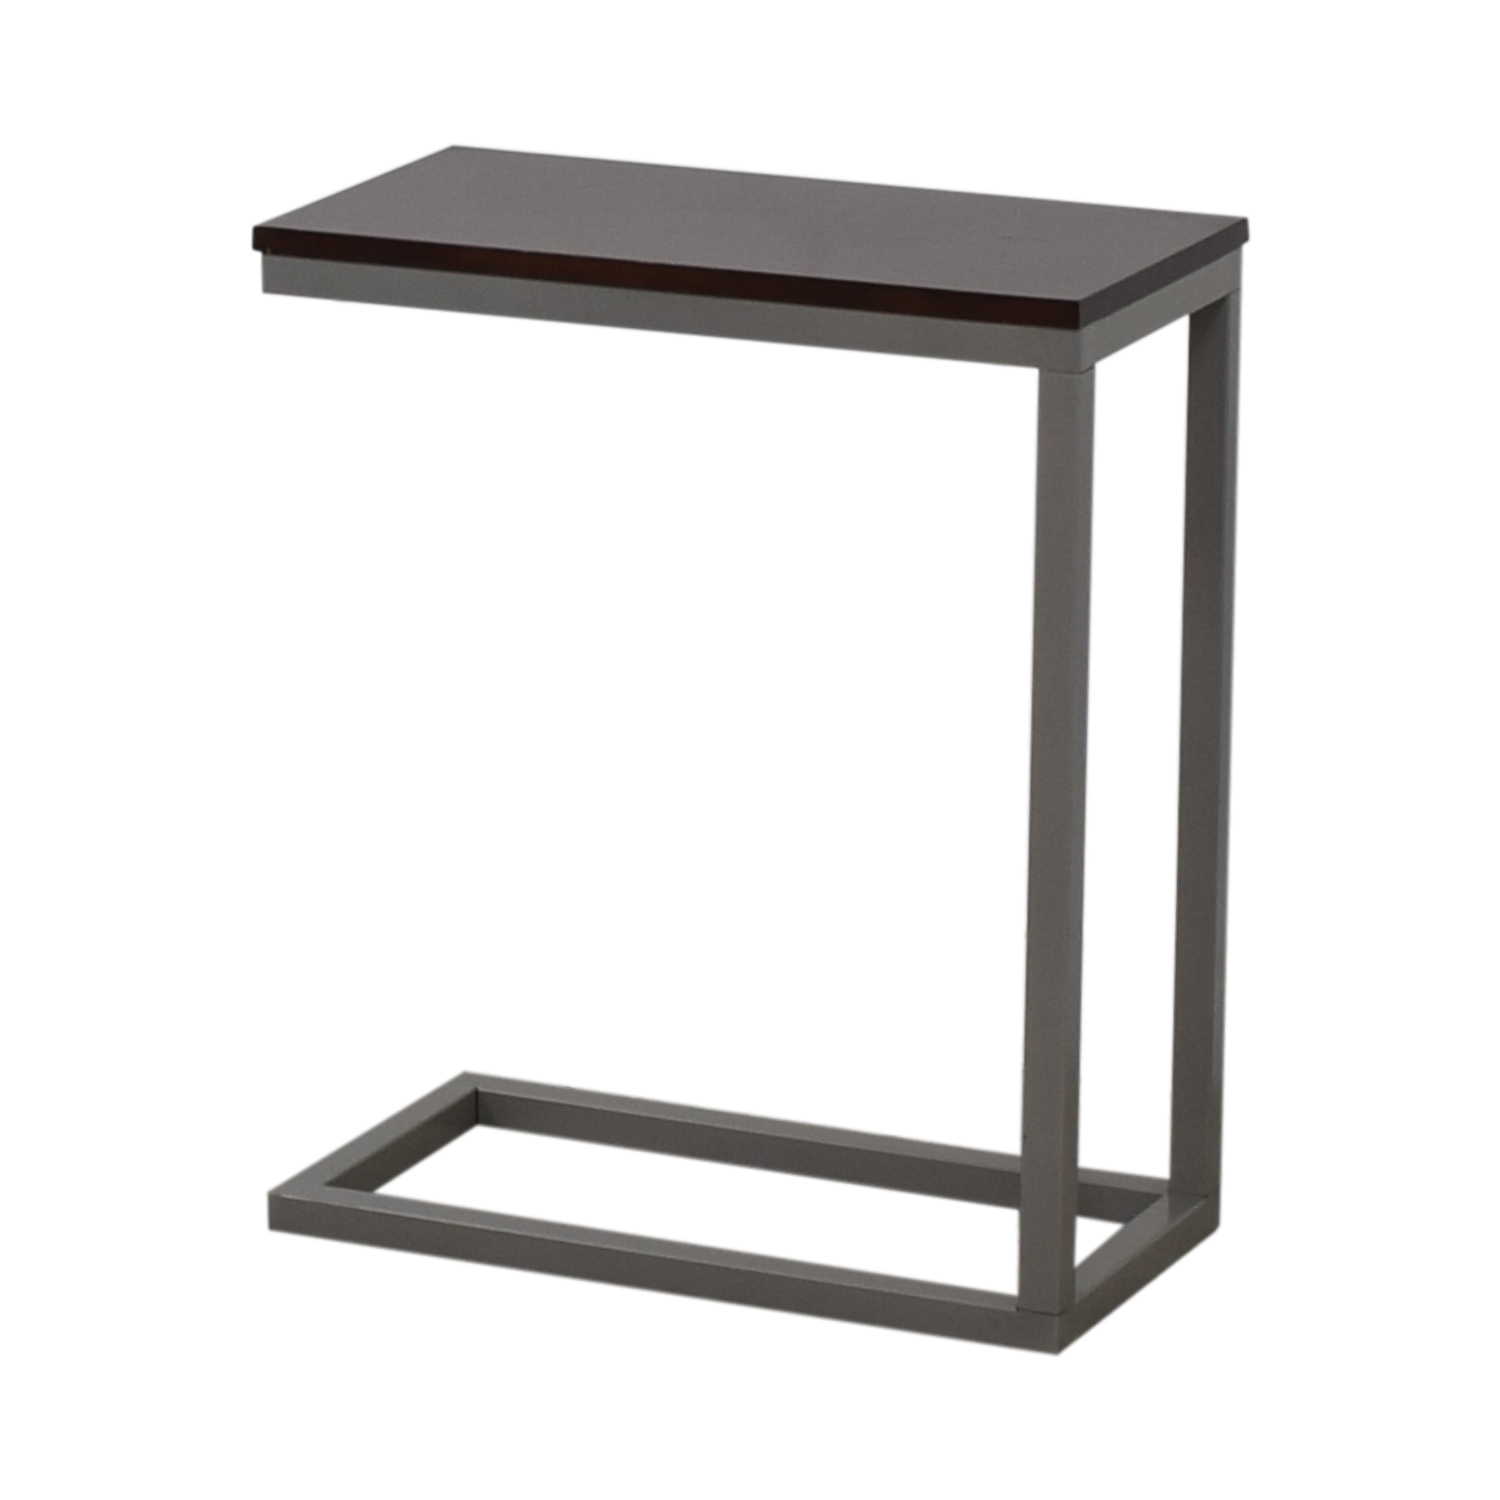 West Elm West Elm C-Shaped End Table dimensions